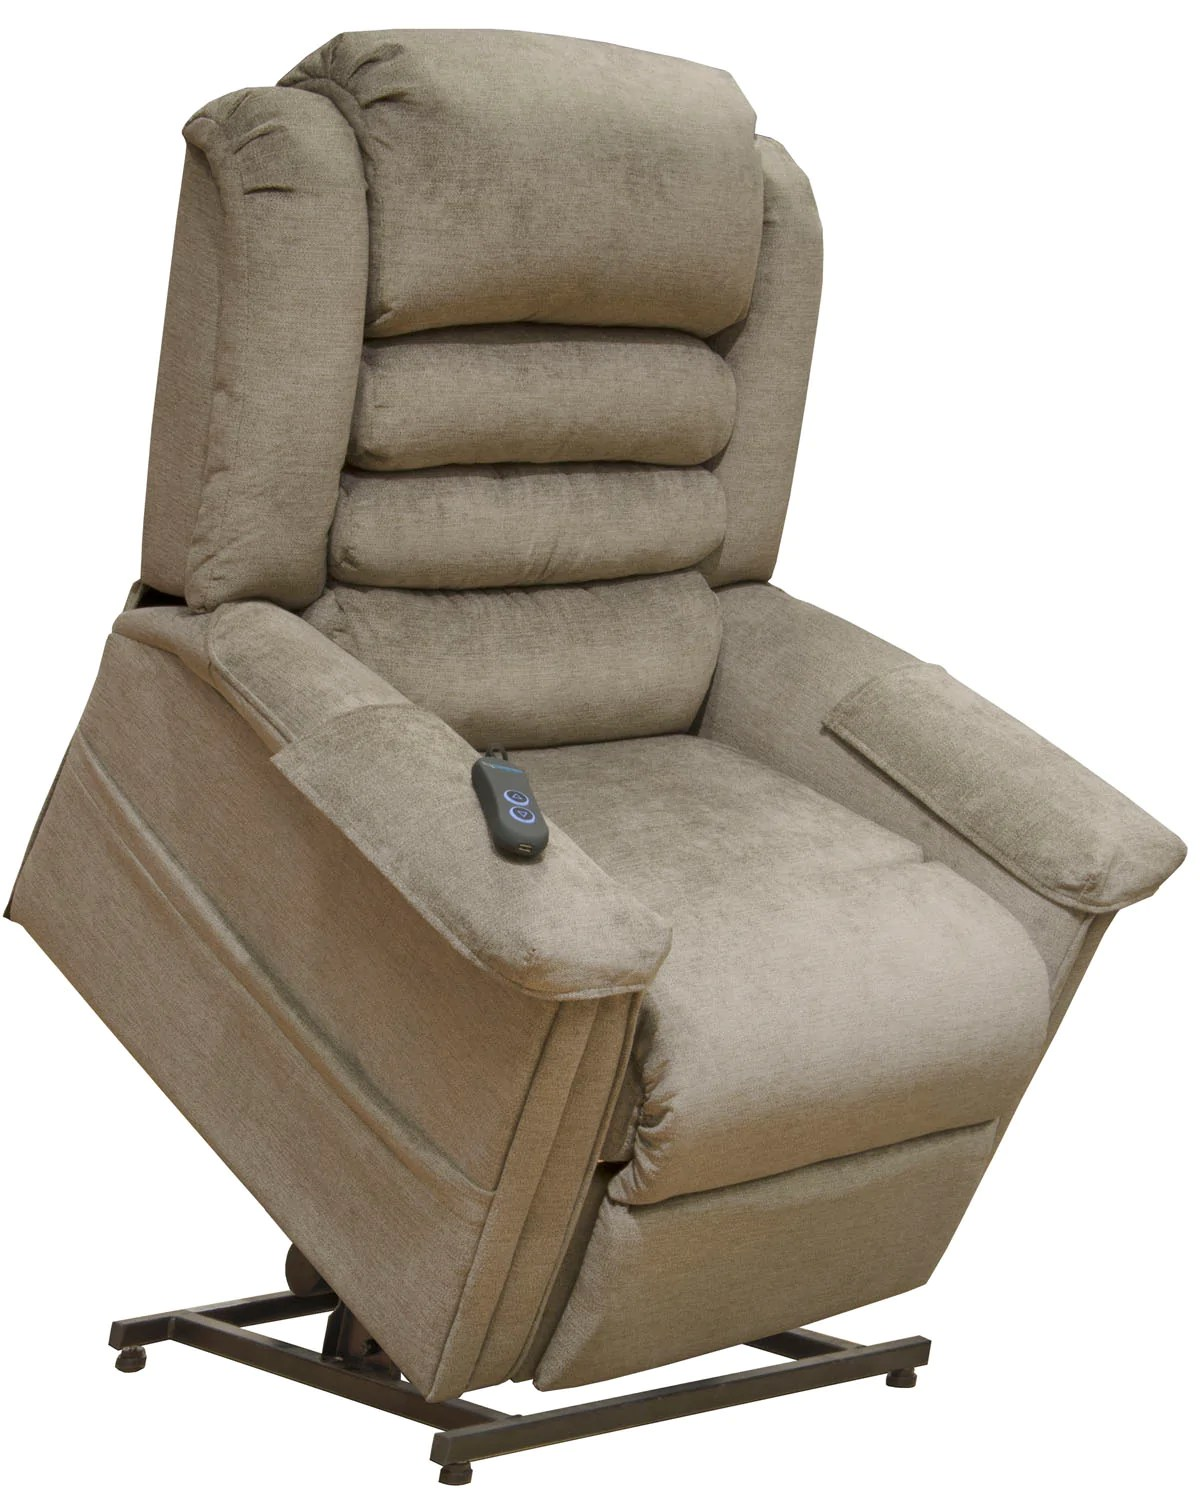 lay flat recliner chairs swing patio chair catnapper power lift and massage